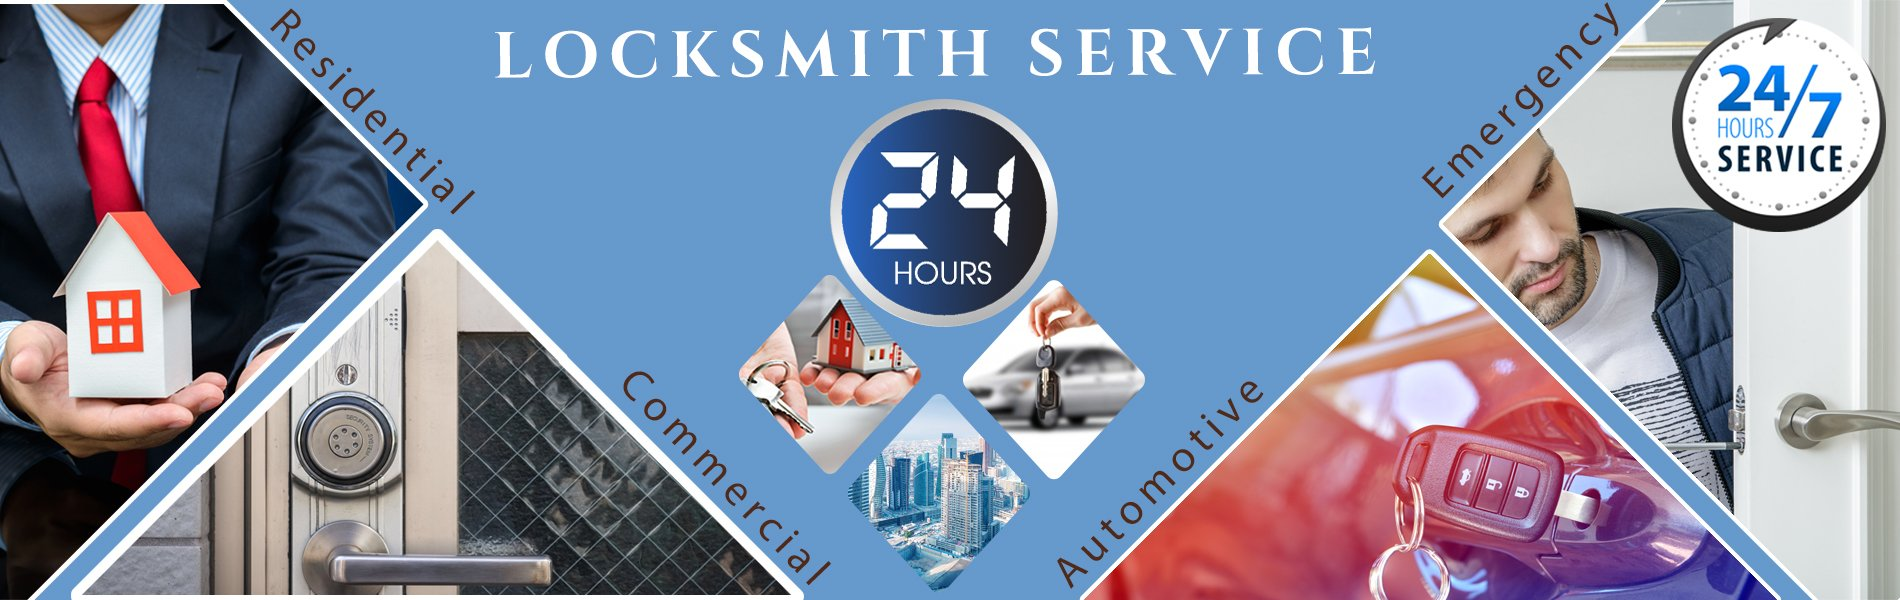 State Locksmith Services Cincinnati, OH 513-494-3063